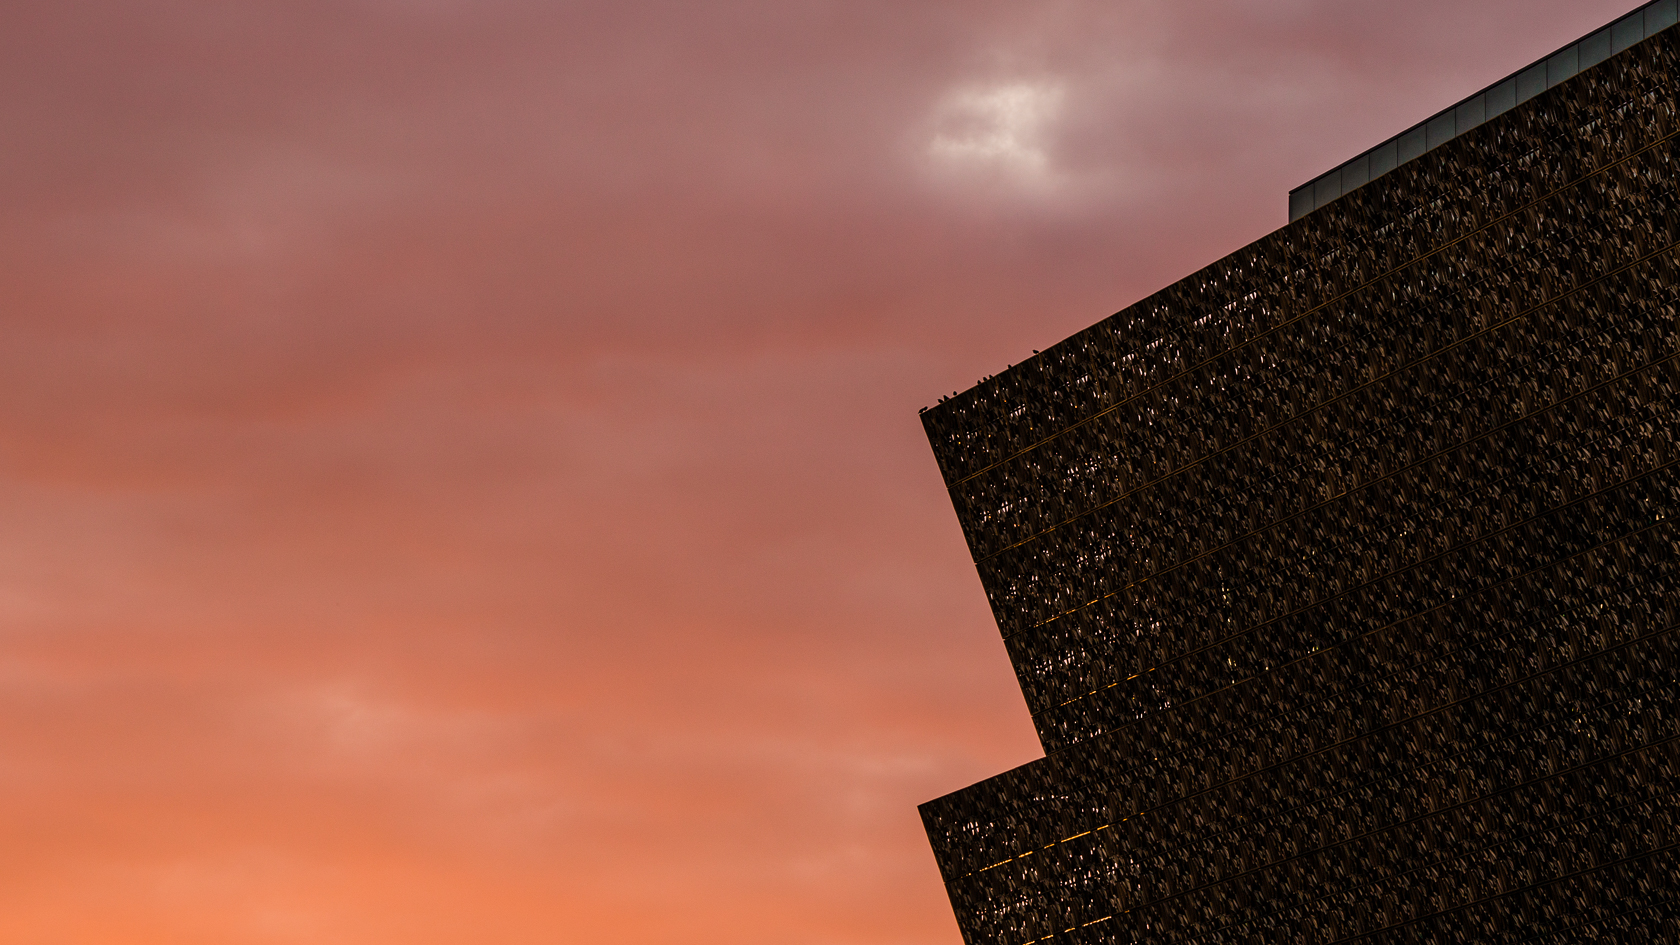 Sunset colors at the NMAAHC